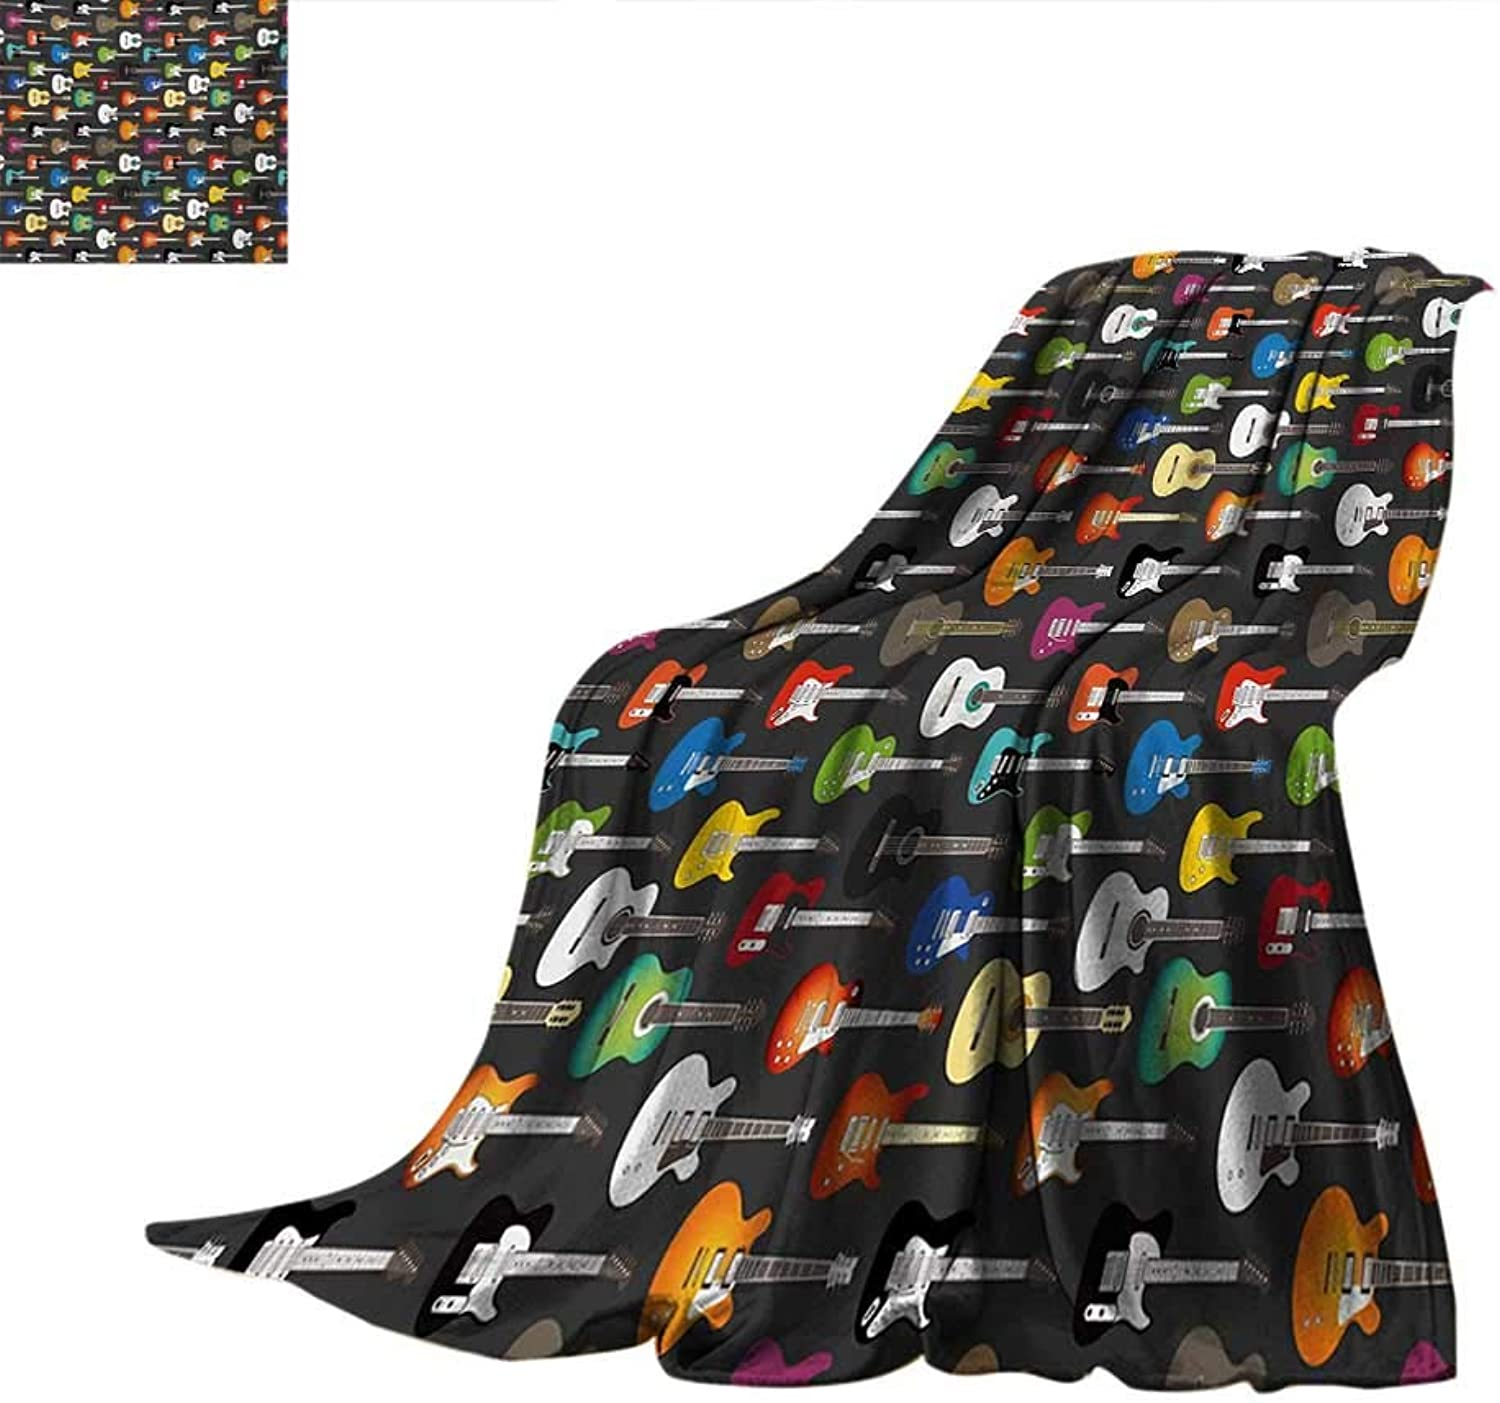 Guitar Weave Pattern Blanket Grunge Instruments Strings Creativity Writing Songs Digital Classic Acoustic Music Summer Quilt Comforter 60 x50  Multicolor